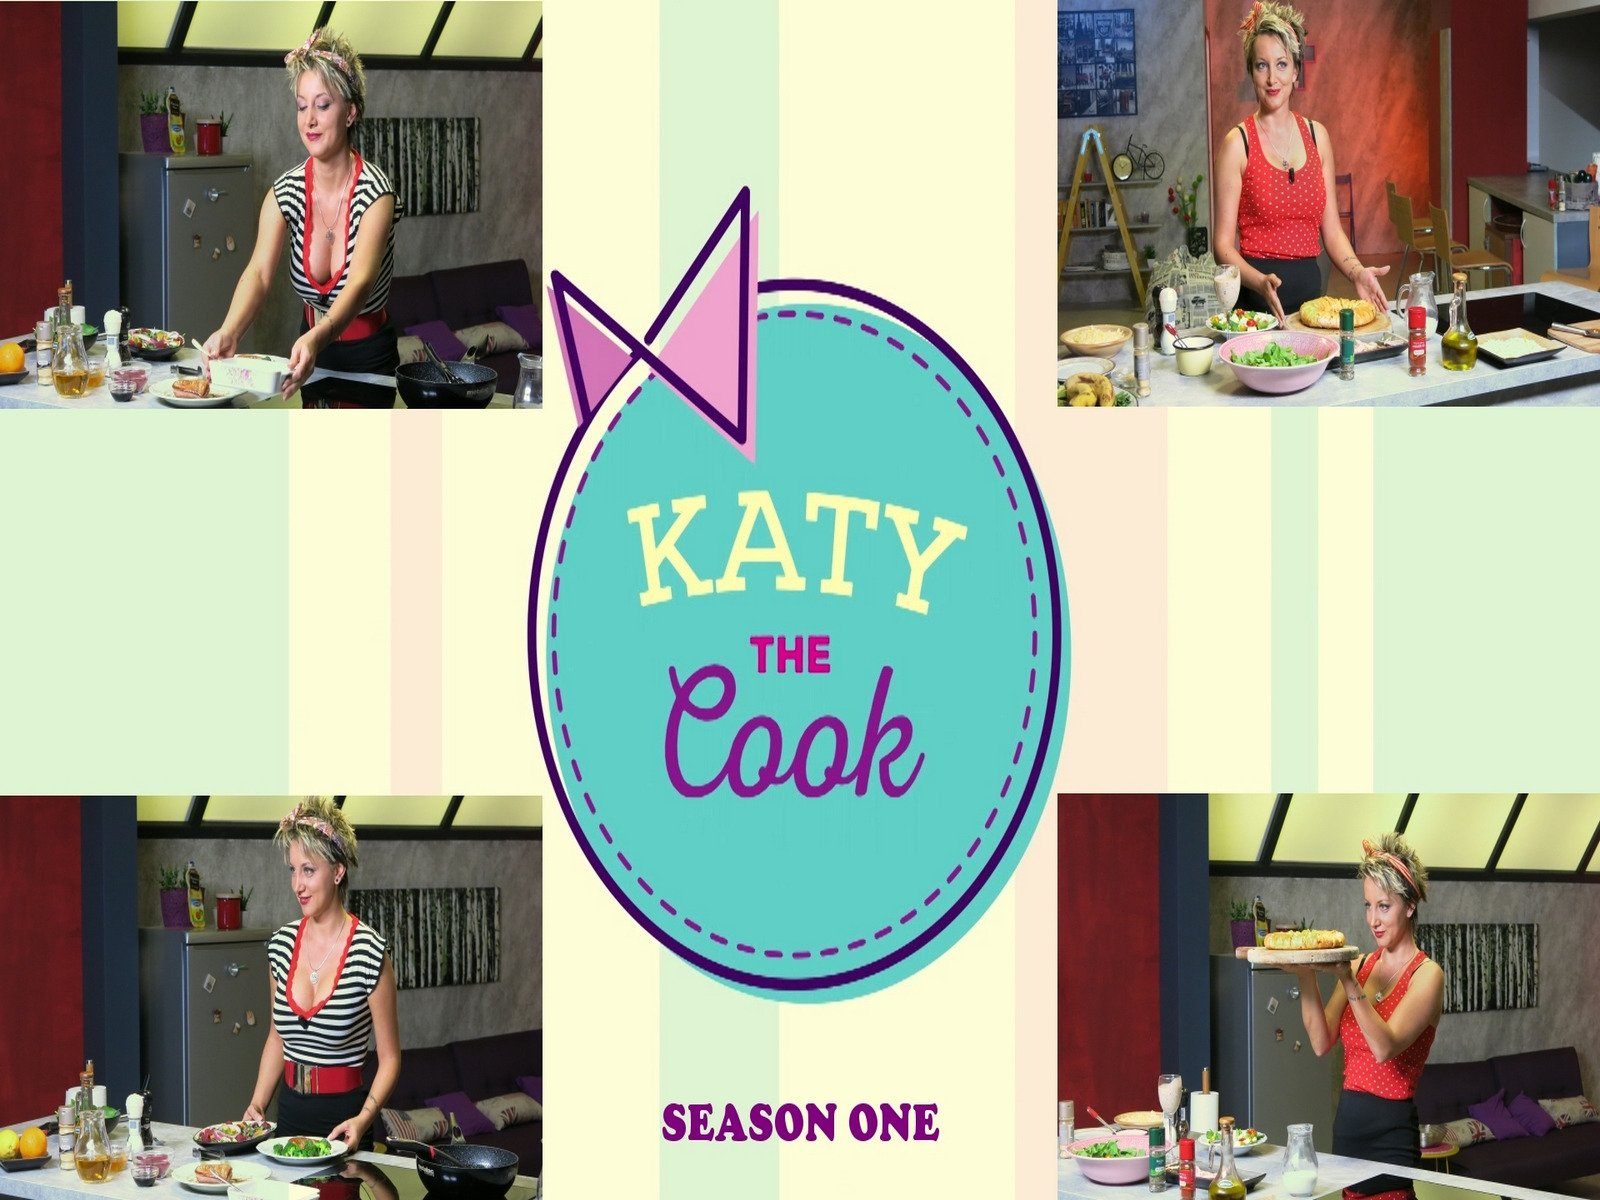 Katy the Cook - Season 1